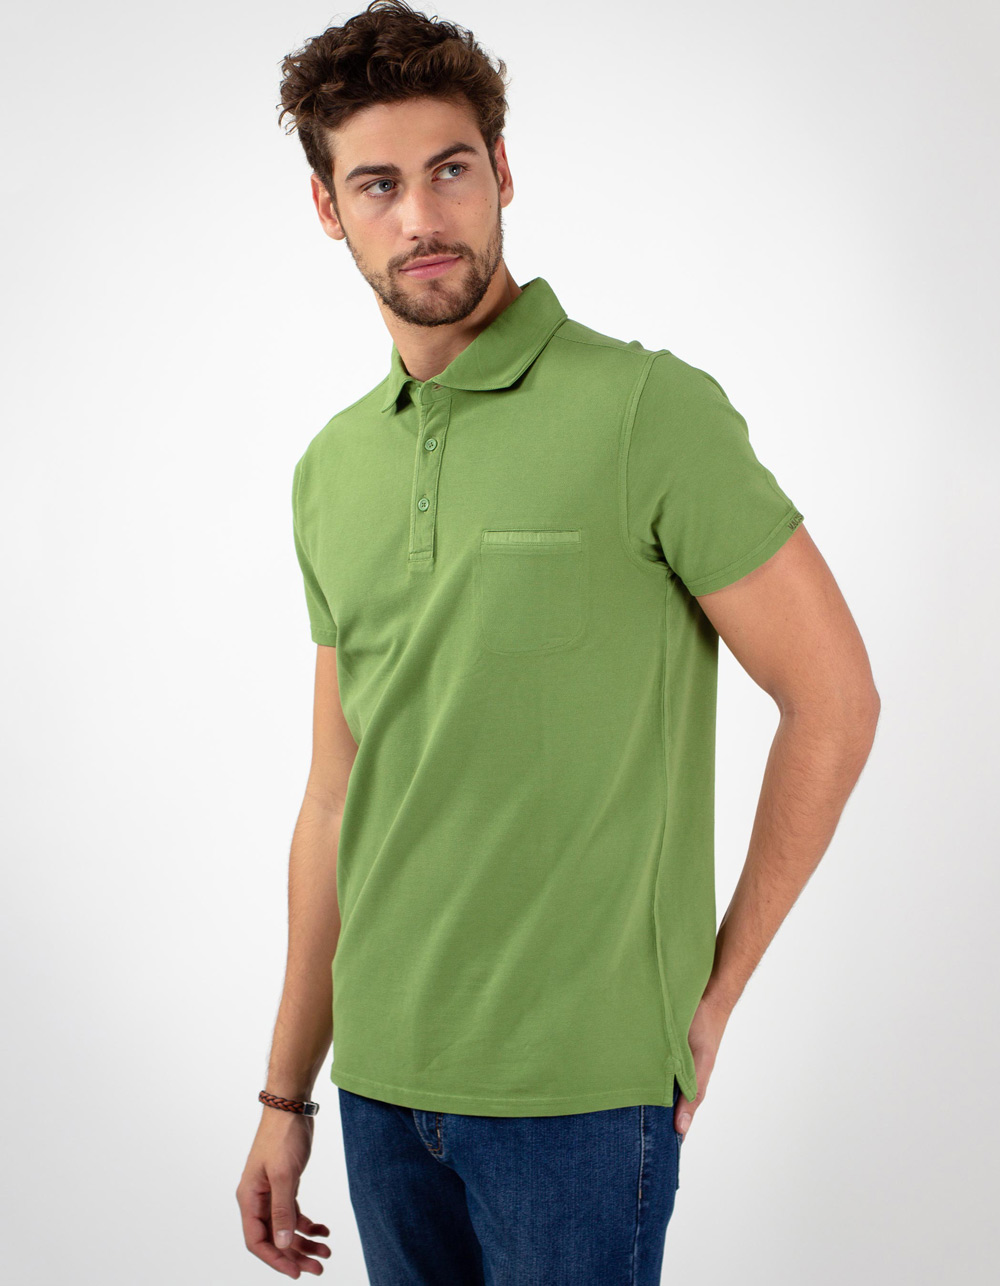 Green pocket piqué polo